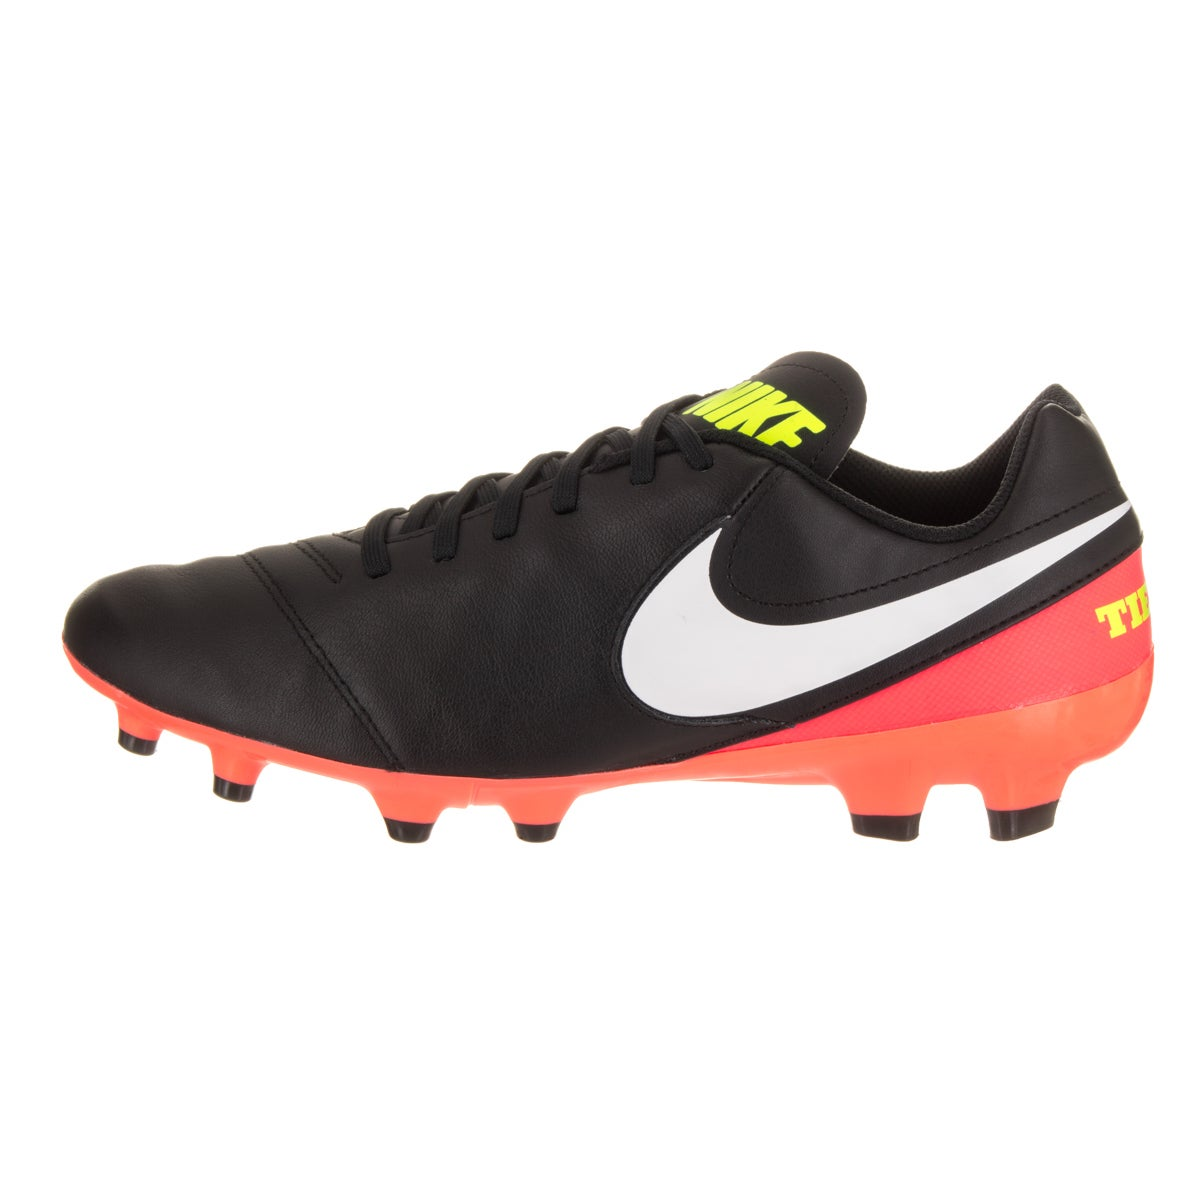 sports shoes fd2cf 3a212 Shop Nike Mens Tiempo Genio II Leather FG Soccer Cleat - Free Shipping  Today - Overstock.com - 14428606